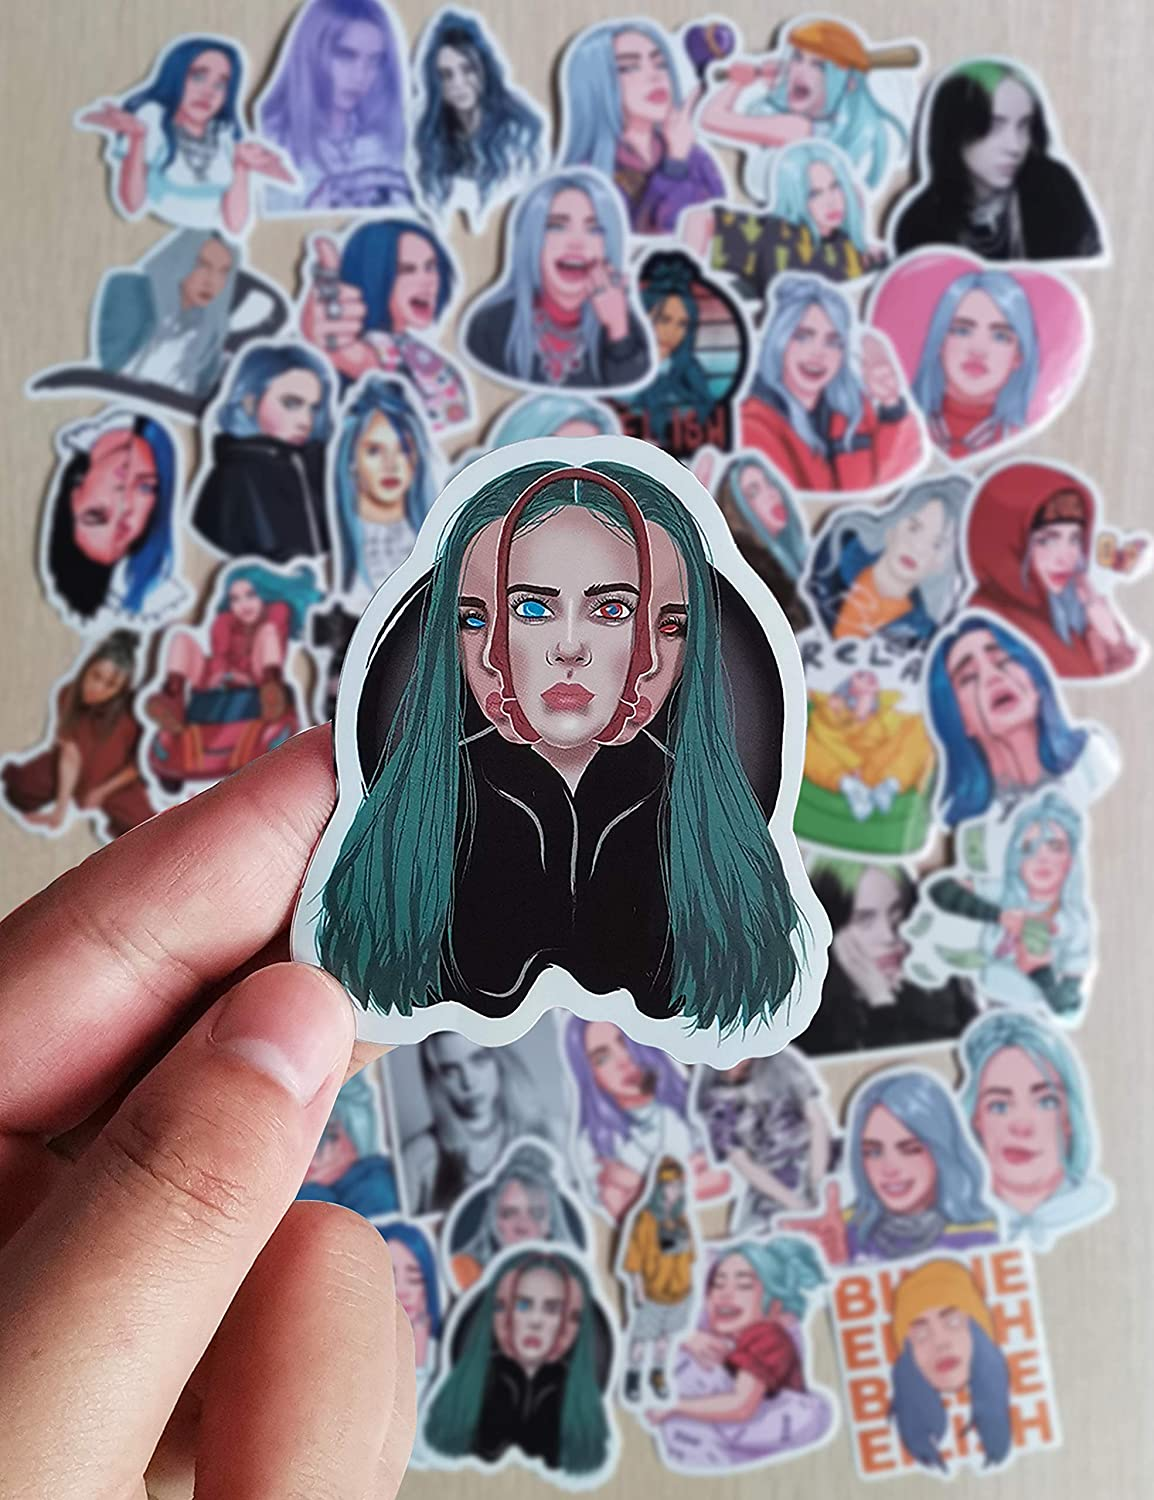 Eilish Merch Sticker,50 Pcs Waterproof Stickers Cool Laptop Sticker Vinyl Sticker Bike Skateboard Luggage Decal